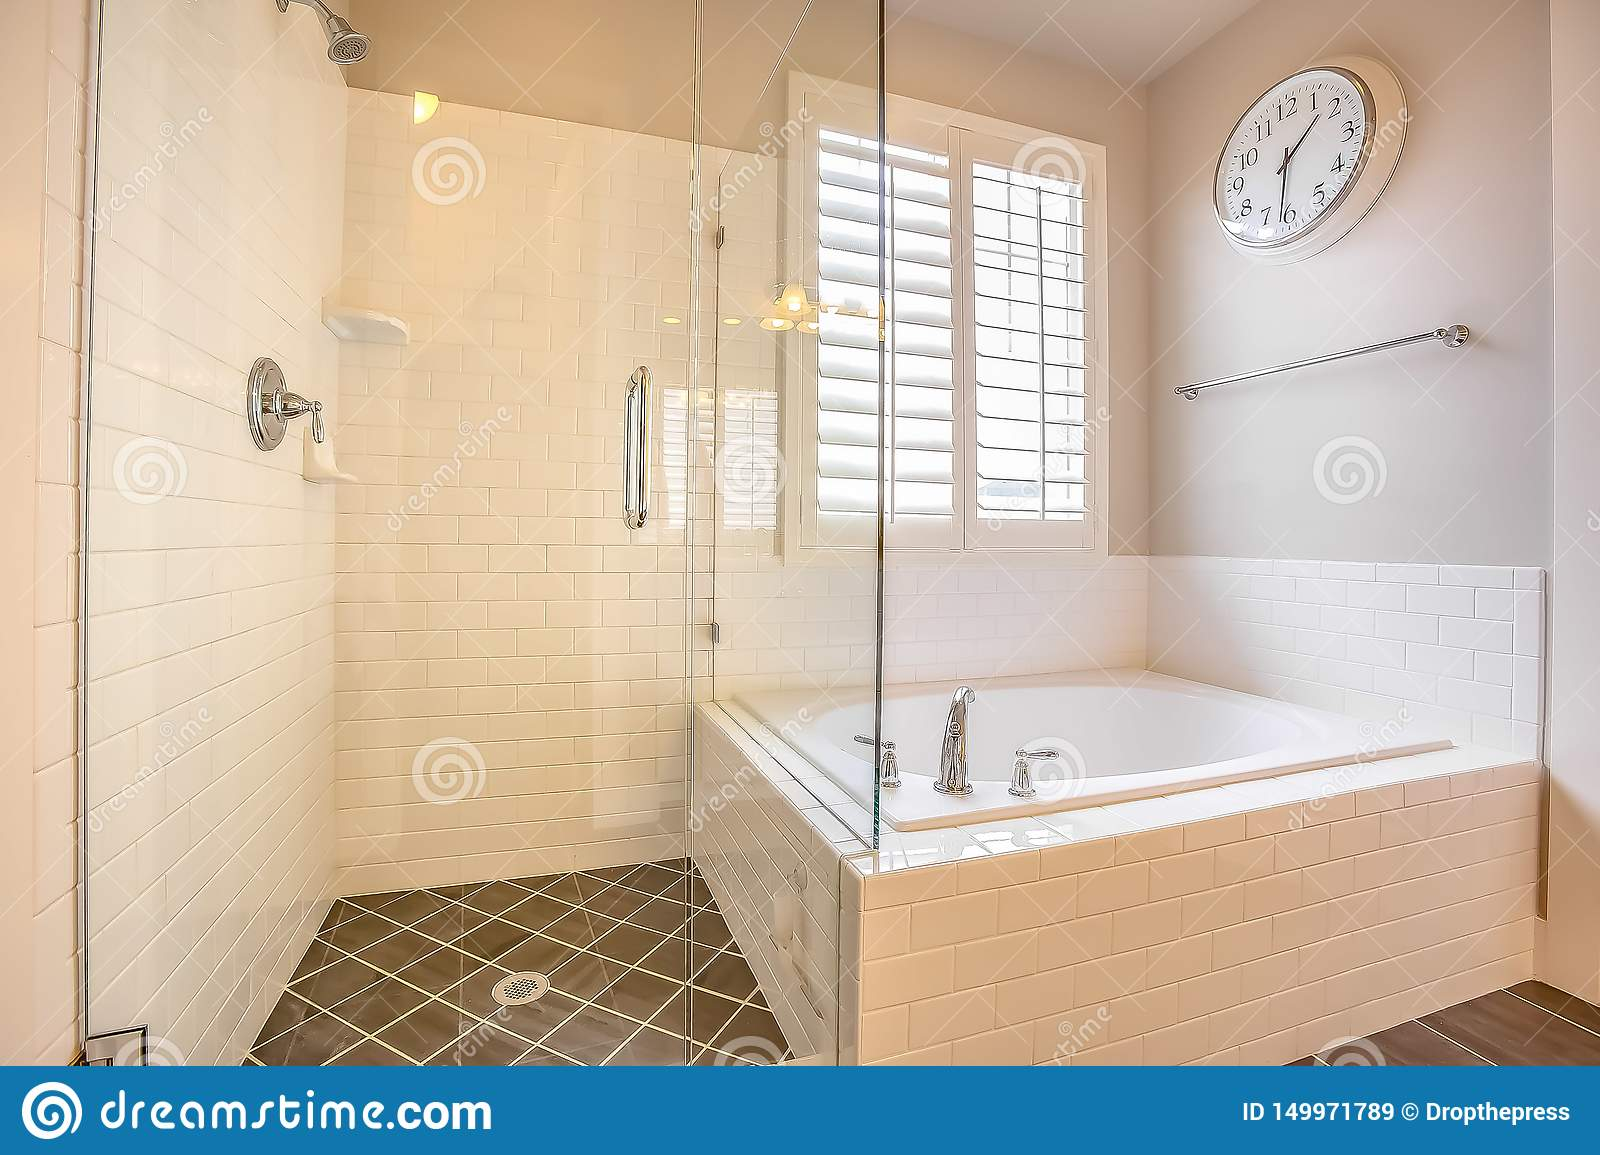 Built In Bathtub And Shower Stall With Glass Door Inside A